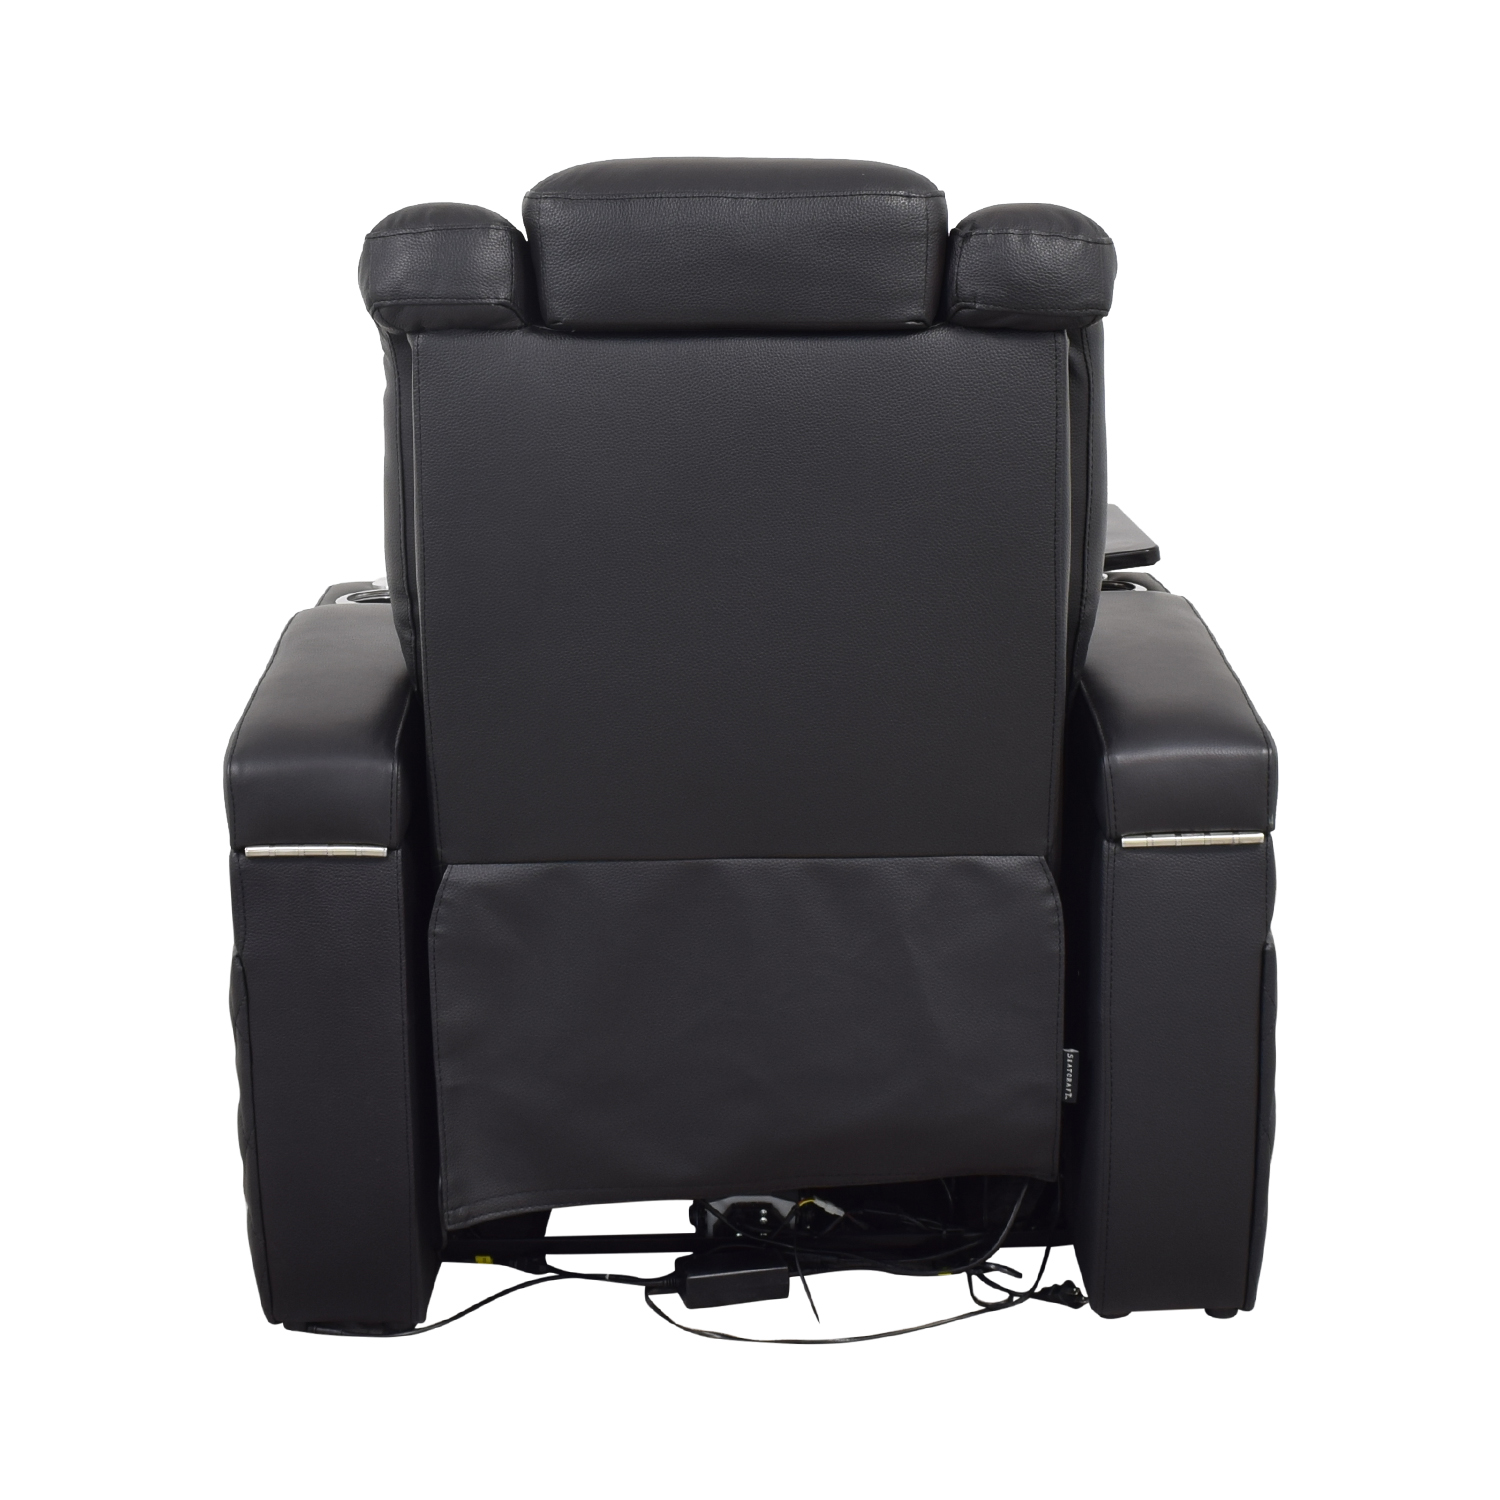 Seatcraft Seatcraft Diamante Home Theater Seating Leather Power Recliner for sale